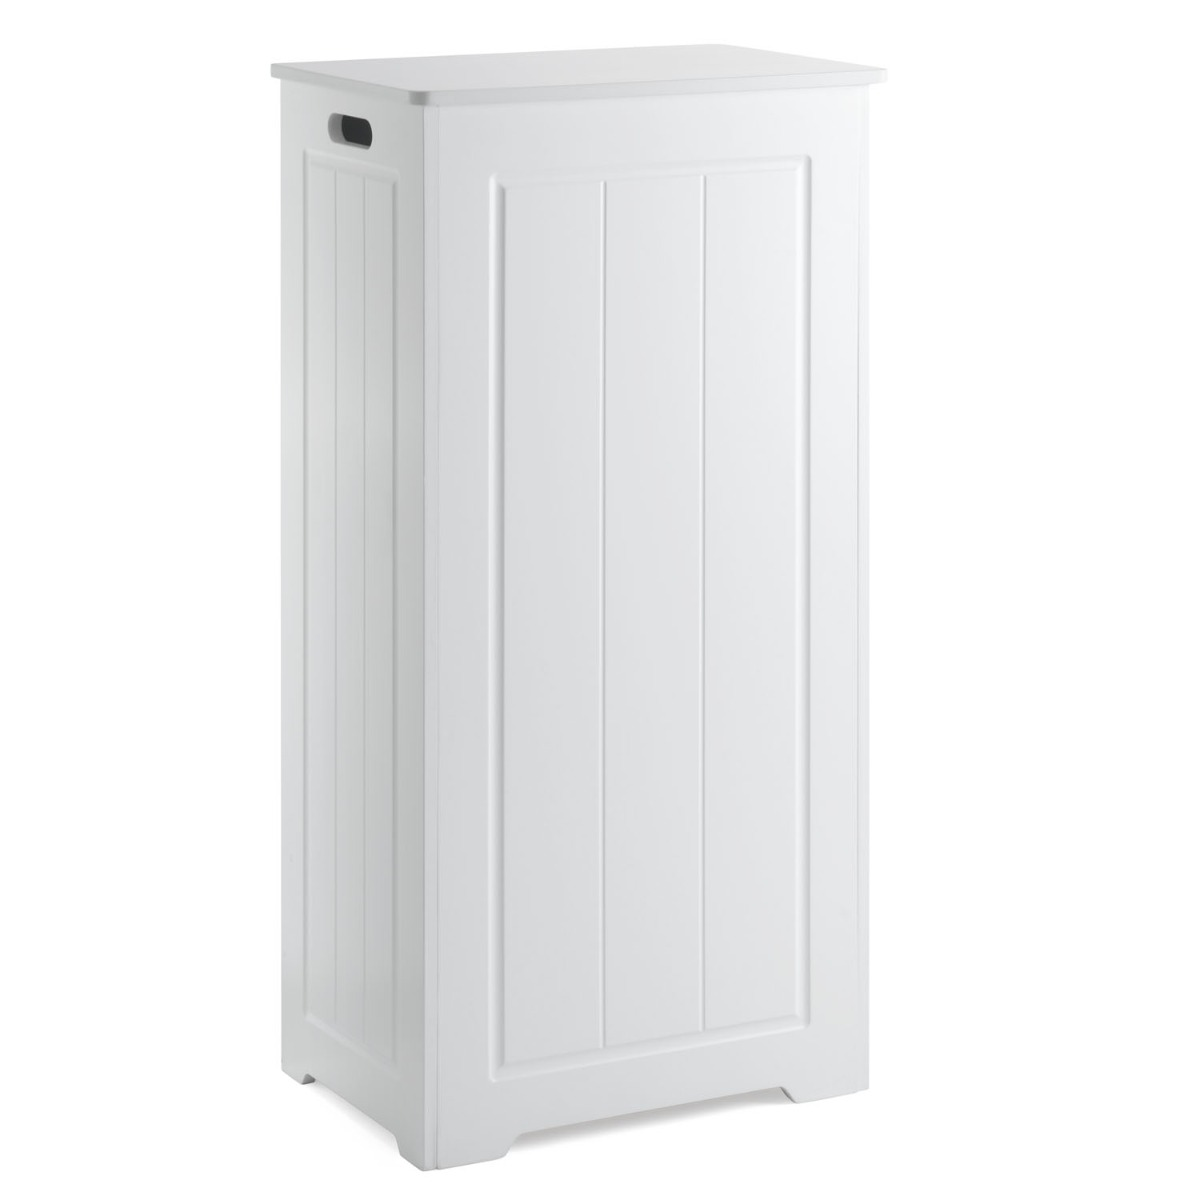 Christow White Laundry Box Wooden Bathroom Storage Basket Linen Clothes Cabinet